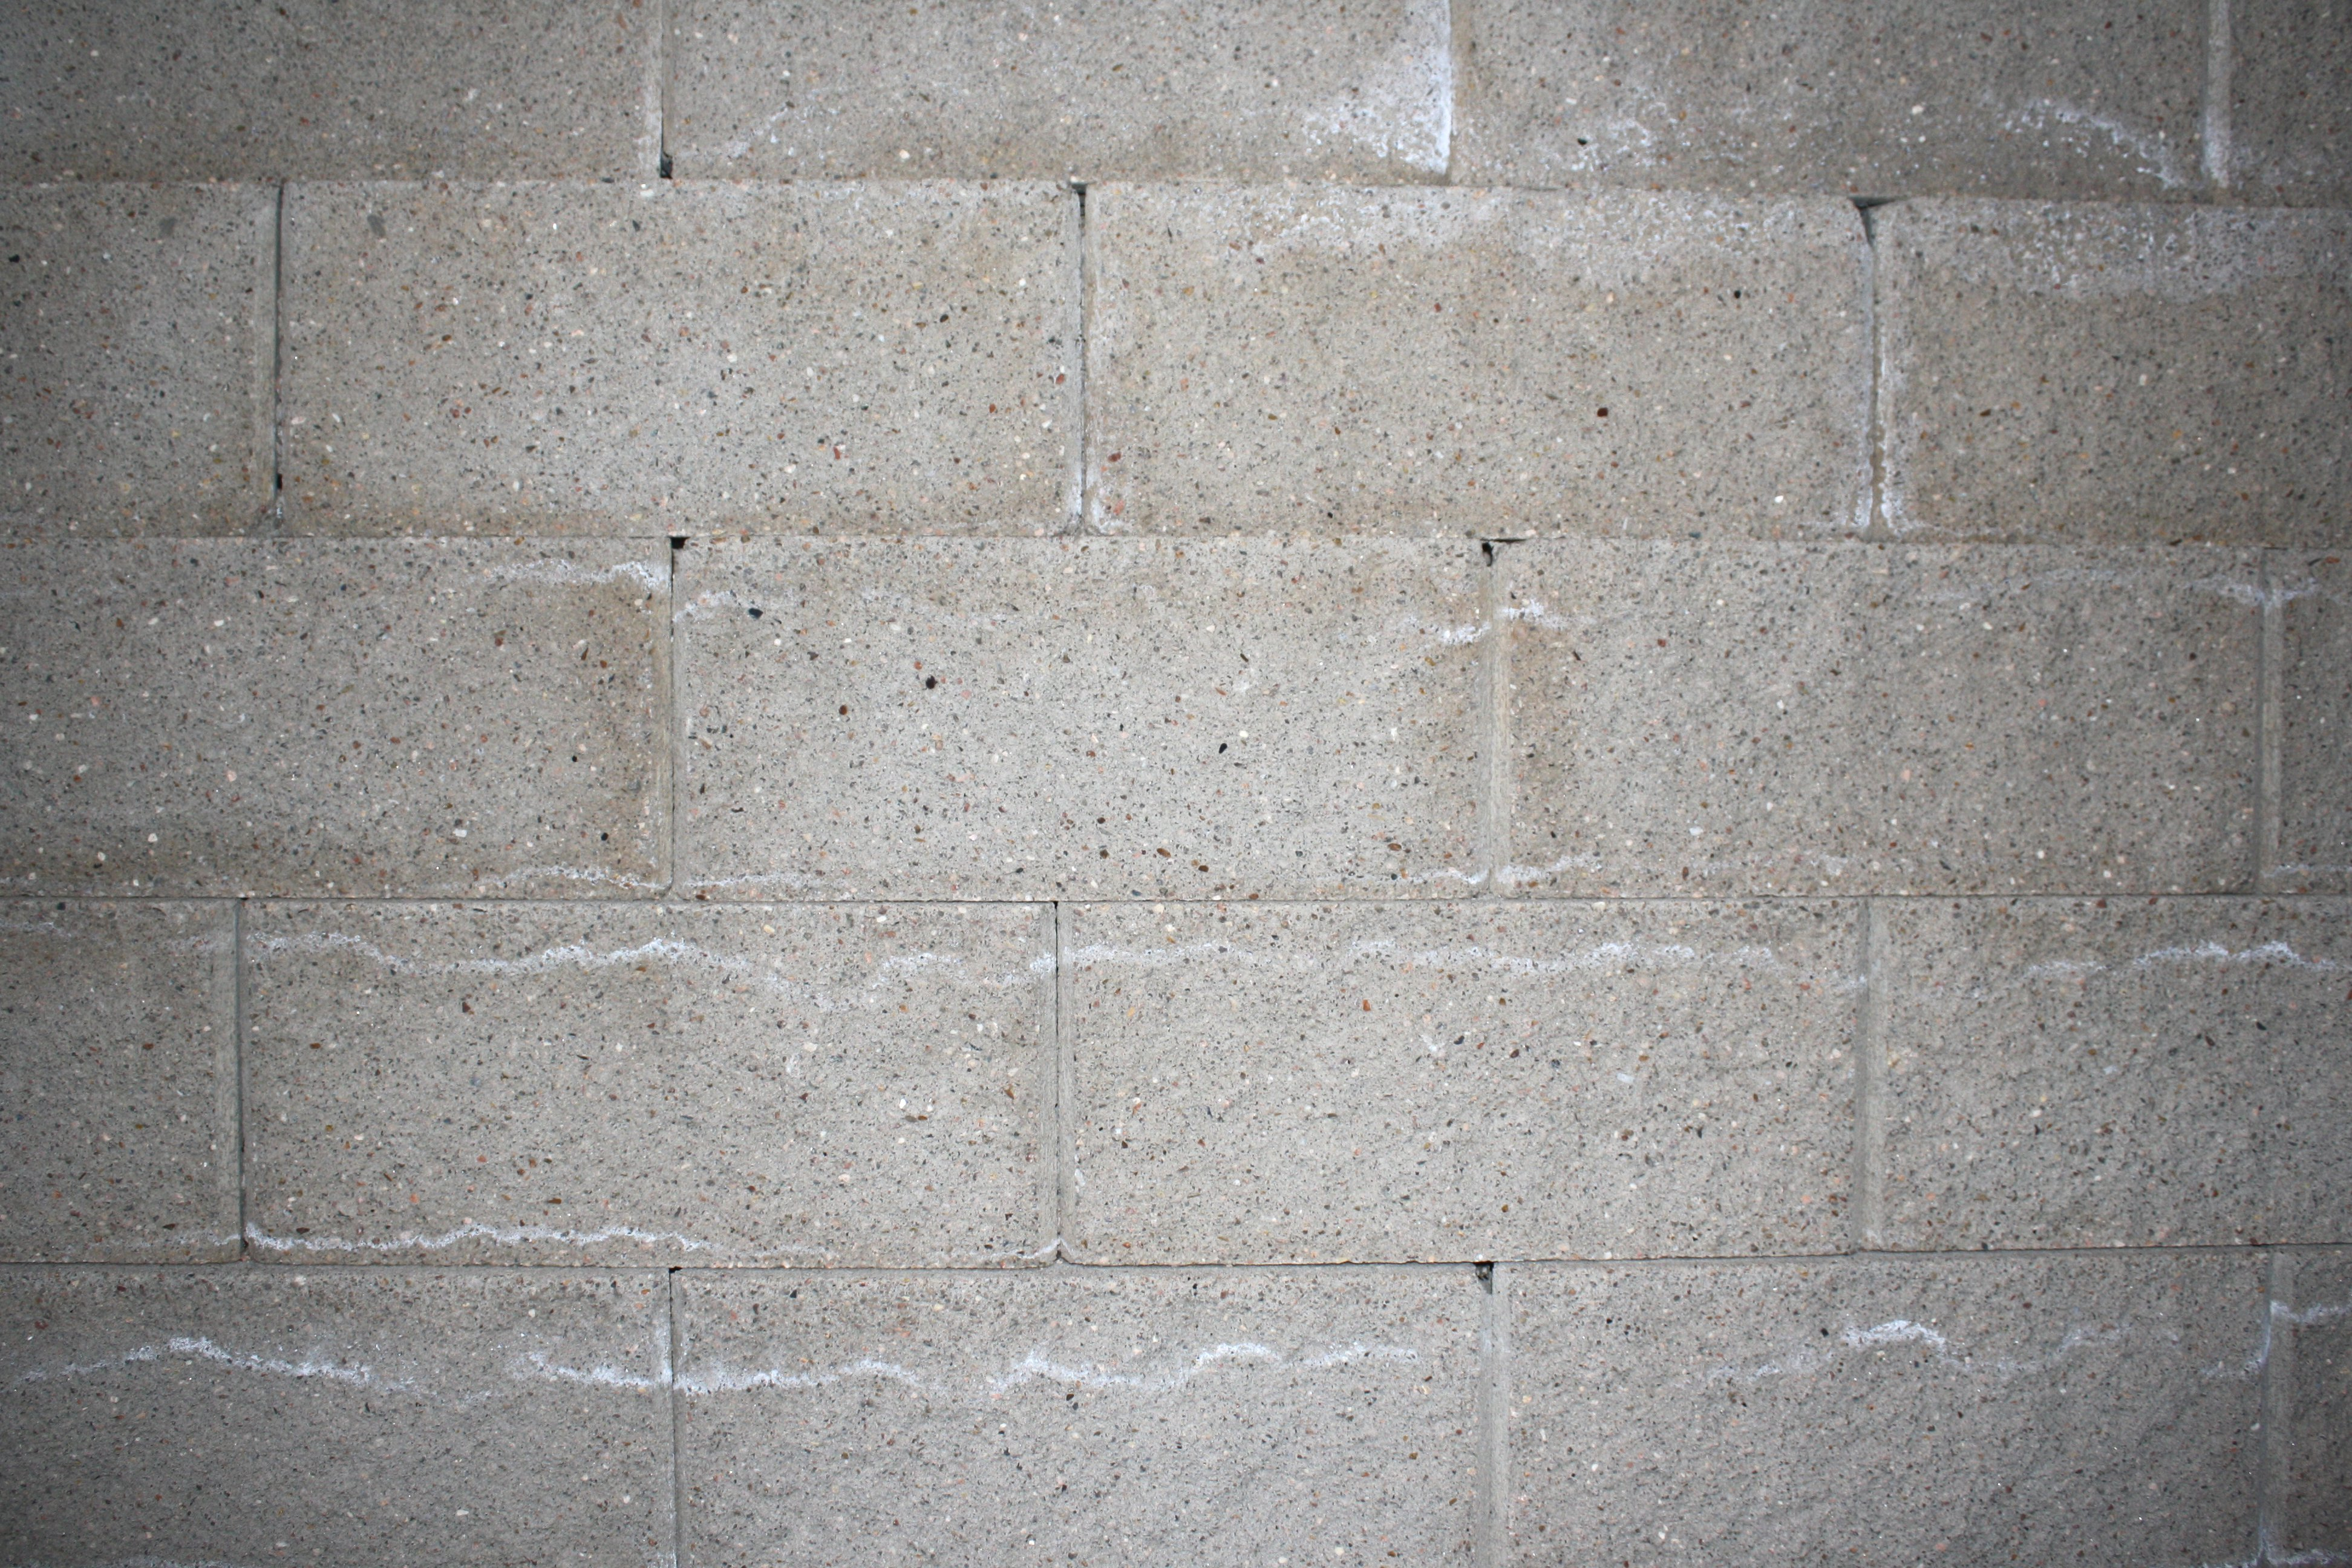 Texturing Concrete Walls Gray Concrete Or Cinder Block Wall Texture Picture Free